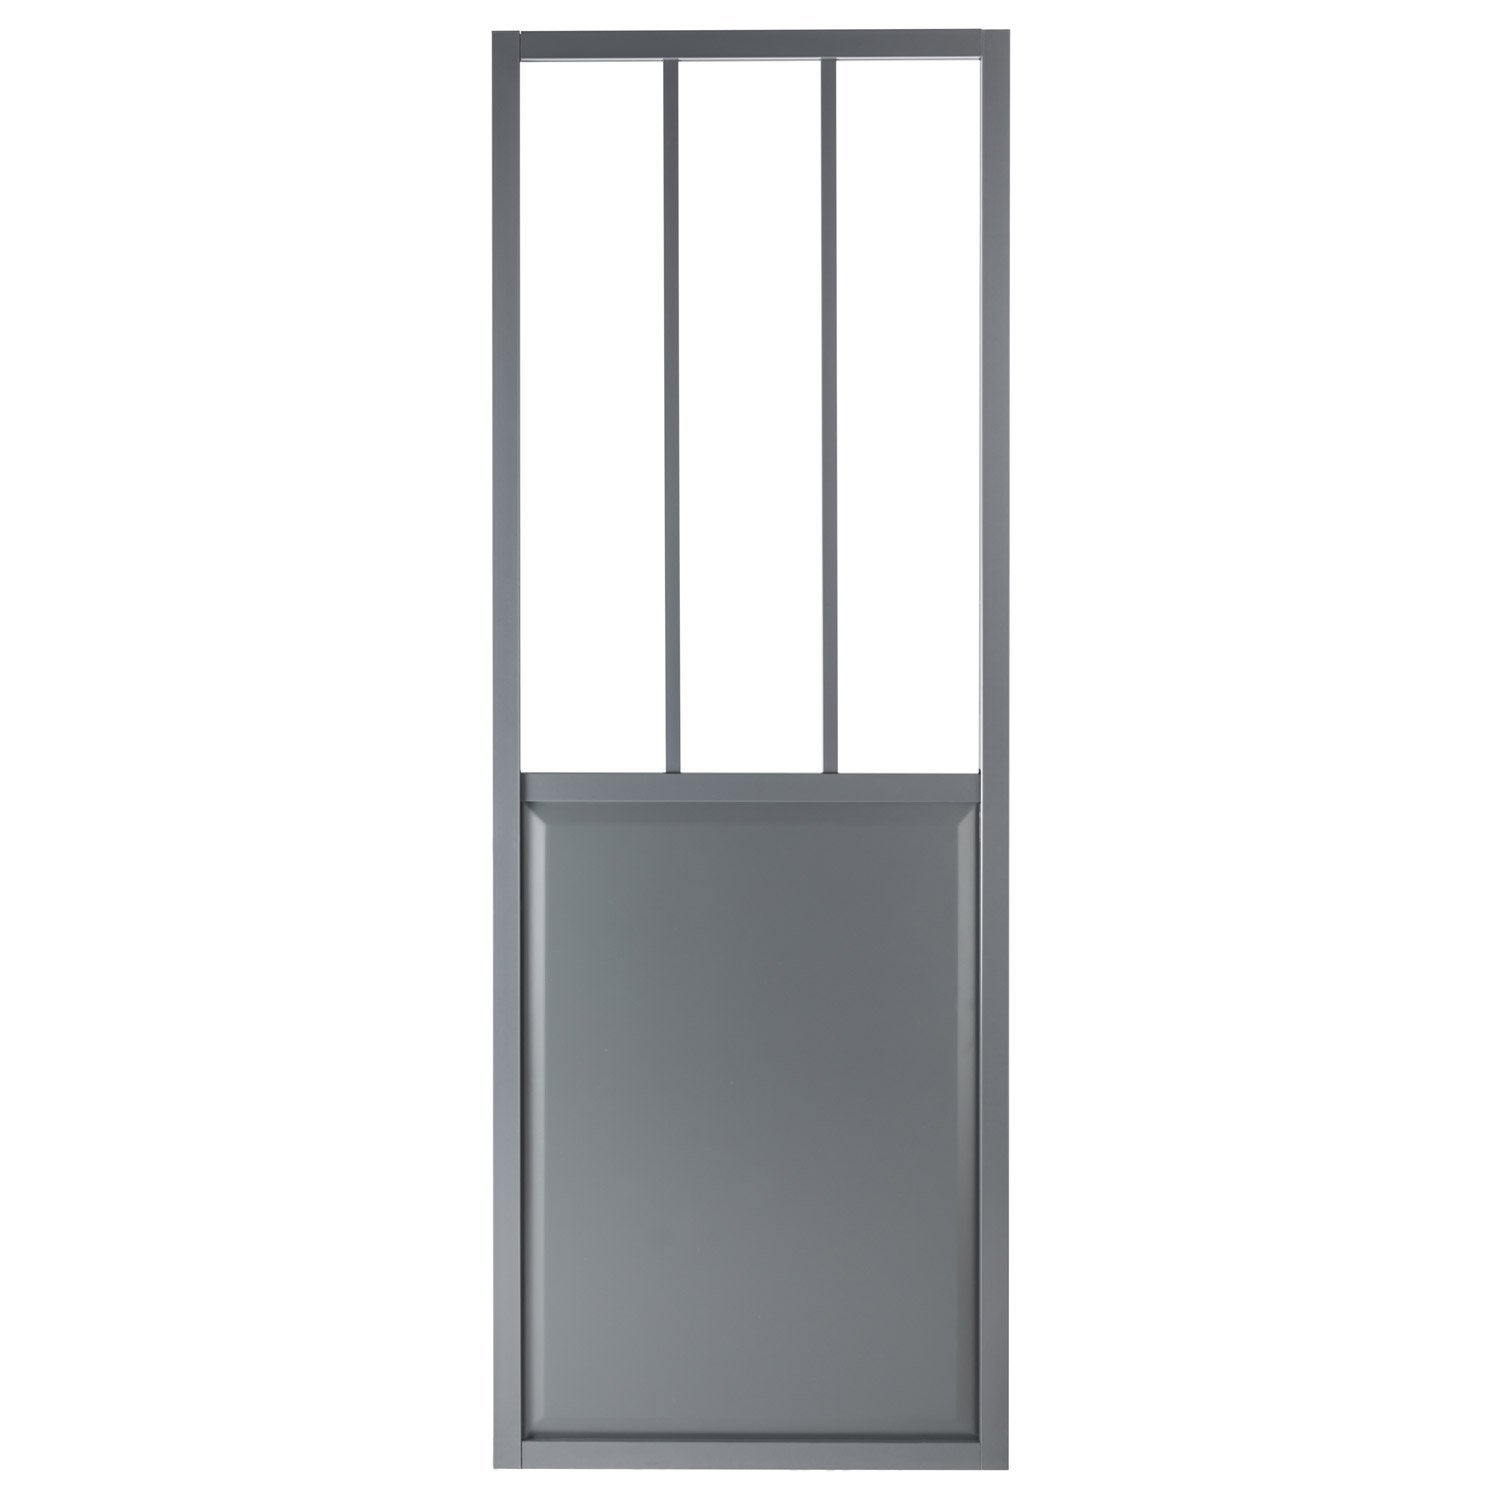 Porte coulissante aluminium gris fonc verre tremp for Porte interieure 73